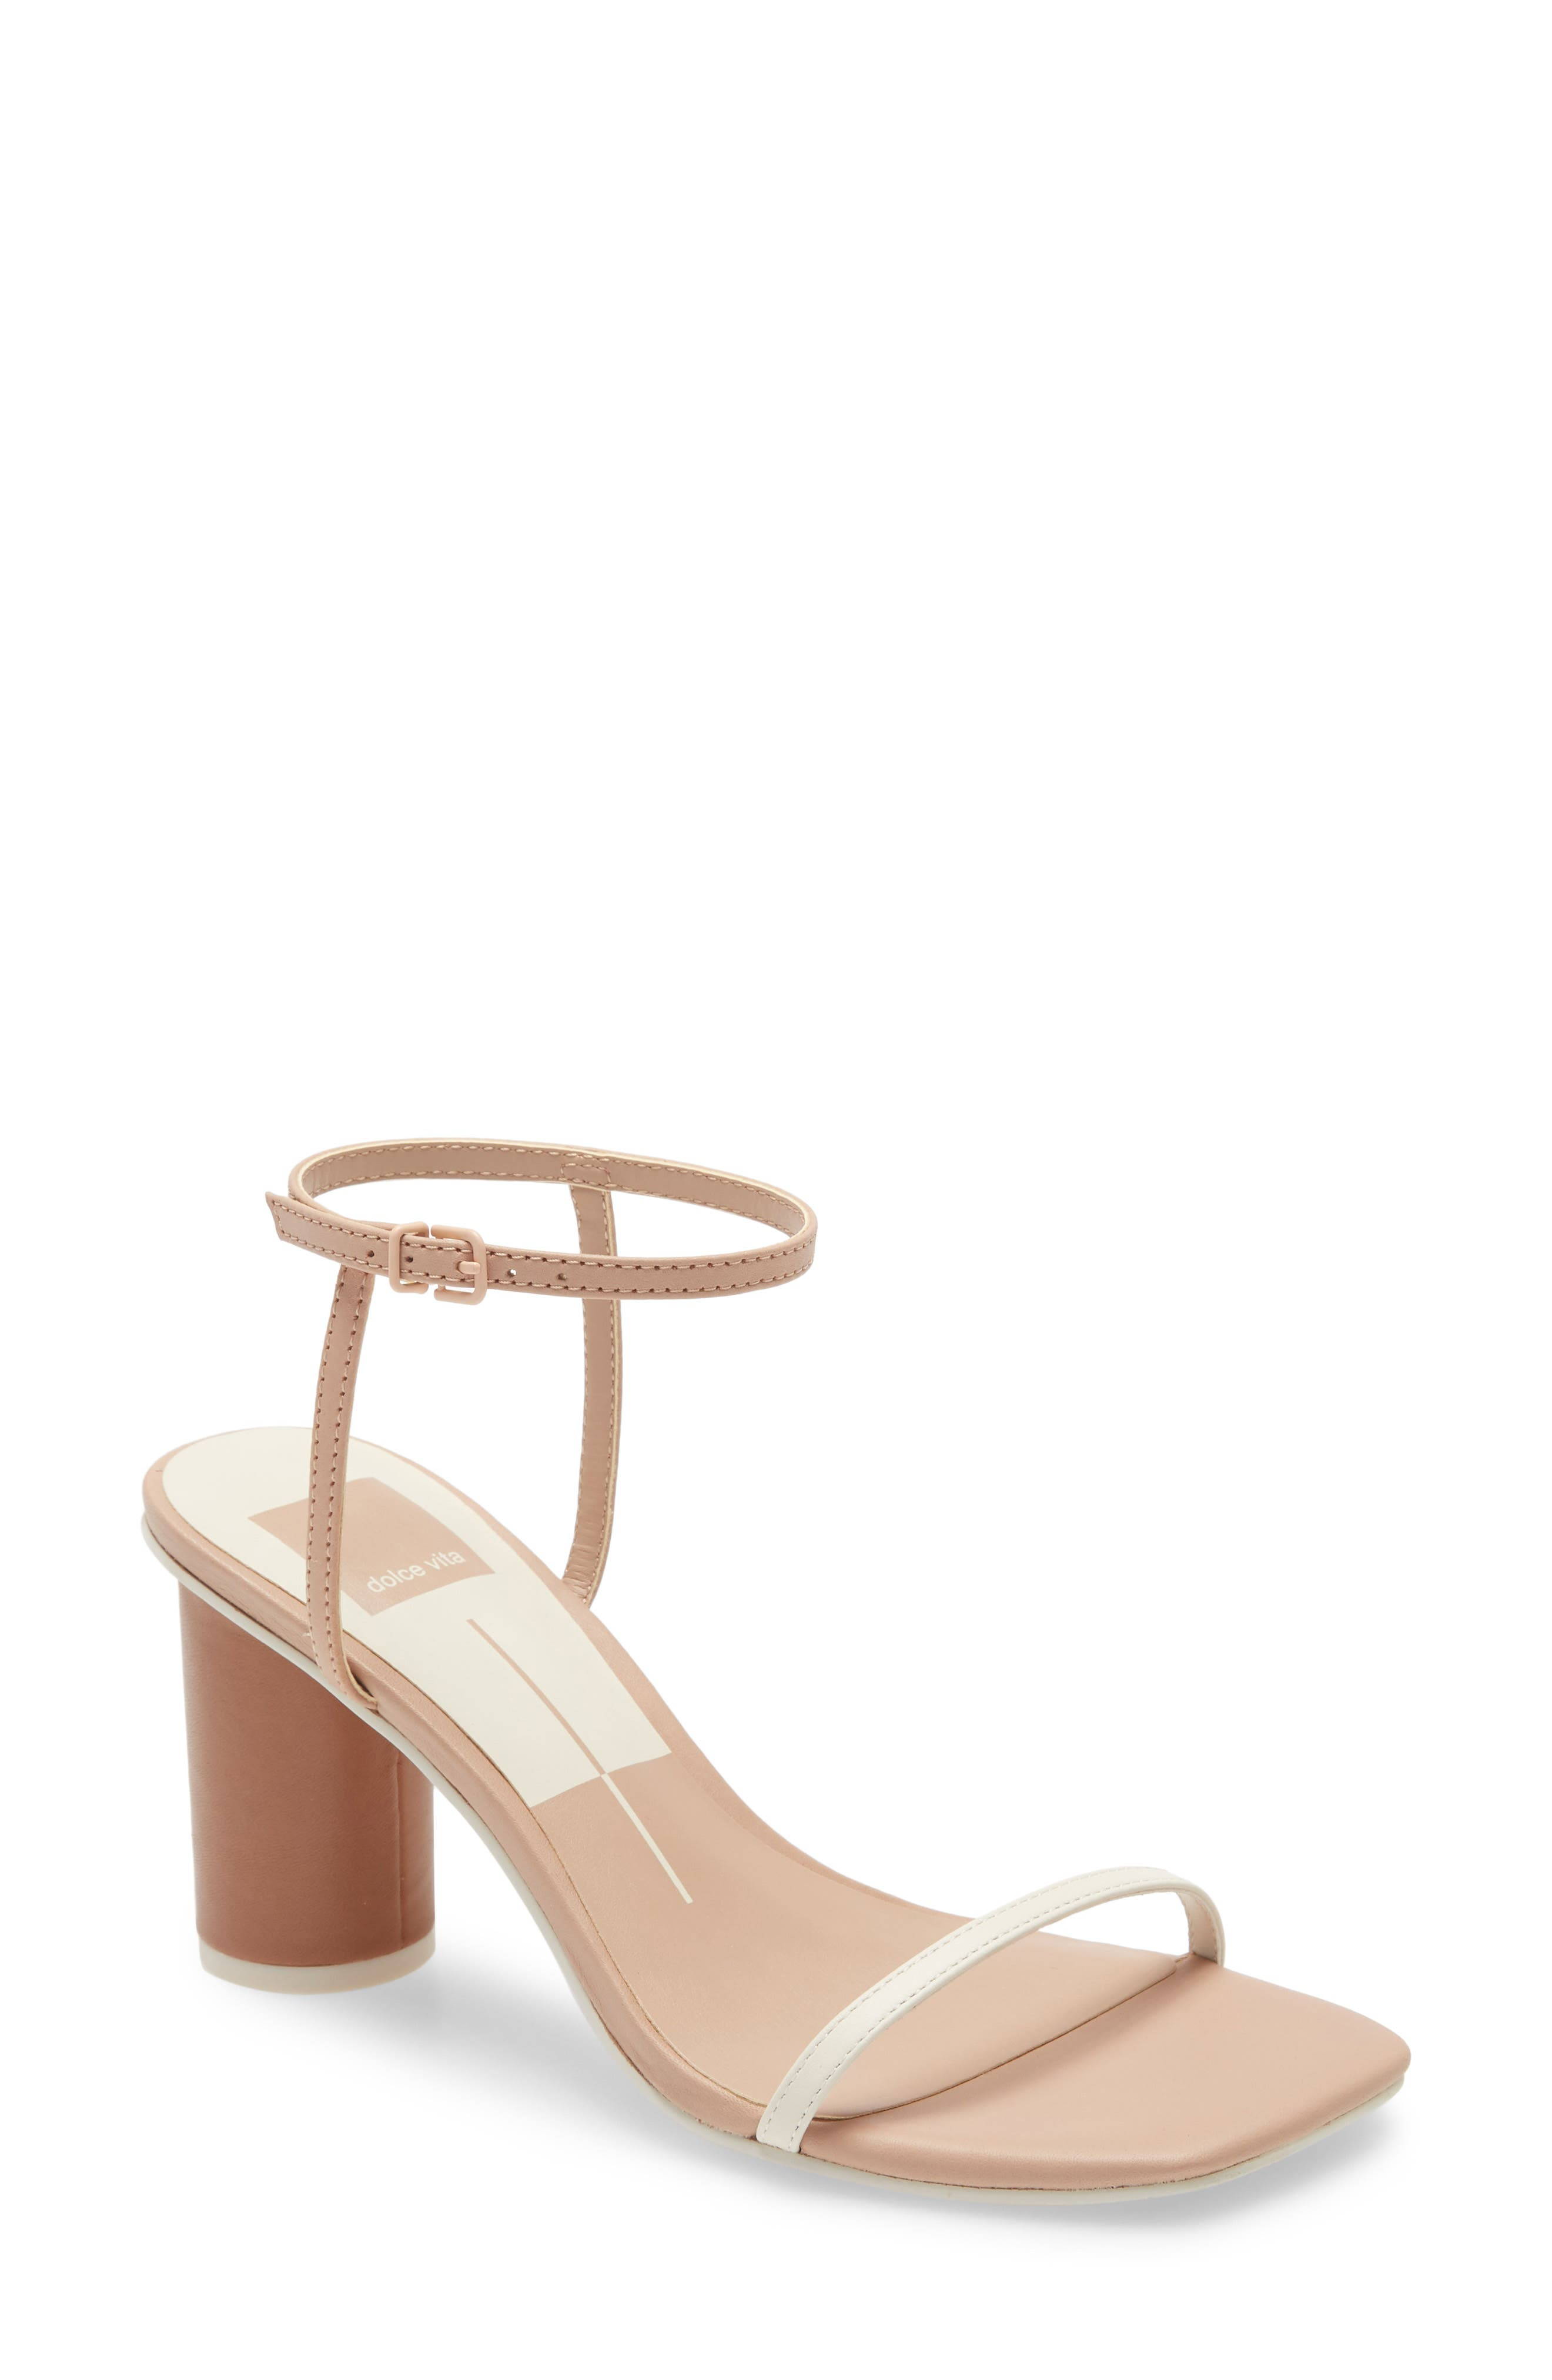 A blunted toe and wrapped column heel distinctively ground a sandal topped with straps that float across the top and around the ankle. Style Name: Dolce Vita Naomey Strappy Statement Heel Sandal (Women). Style Number: 6004184. Available in stores.